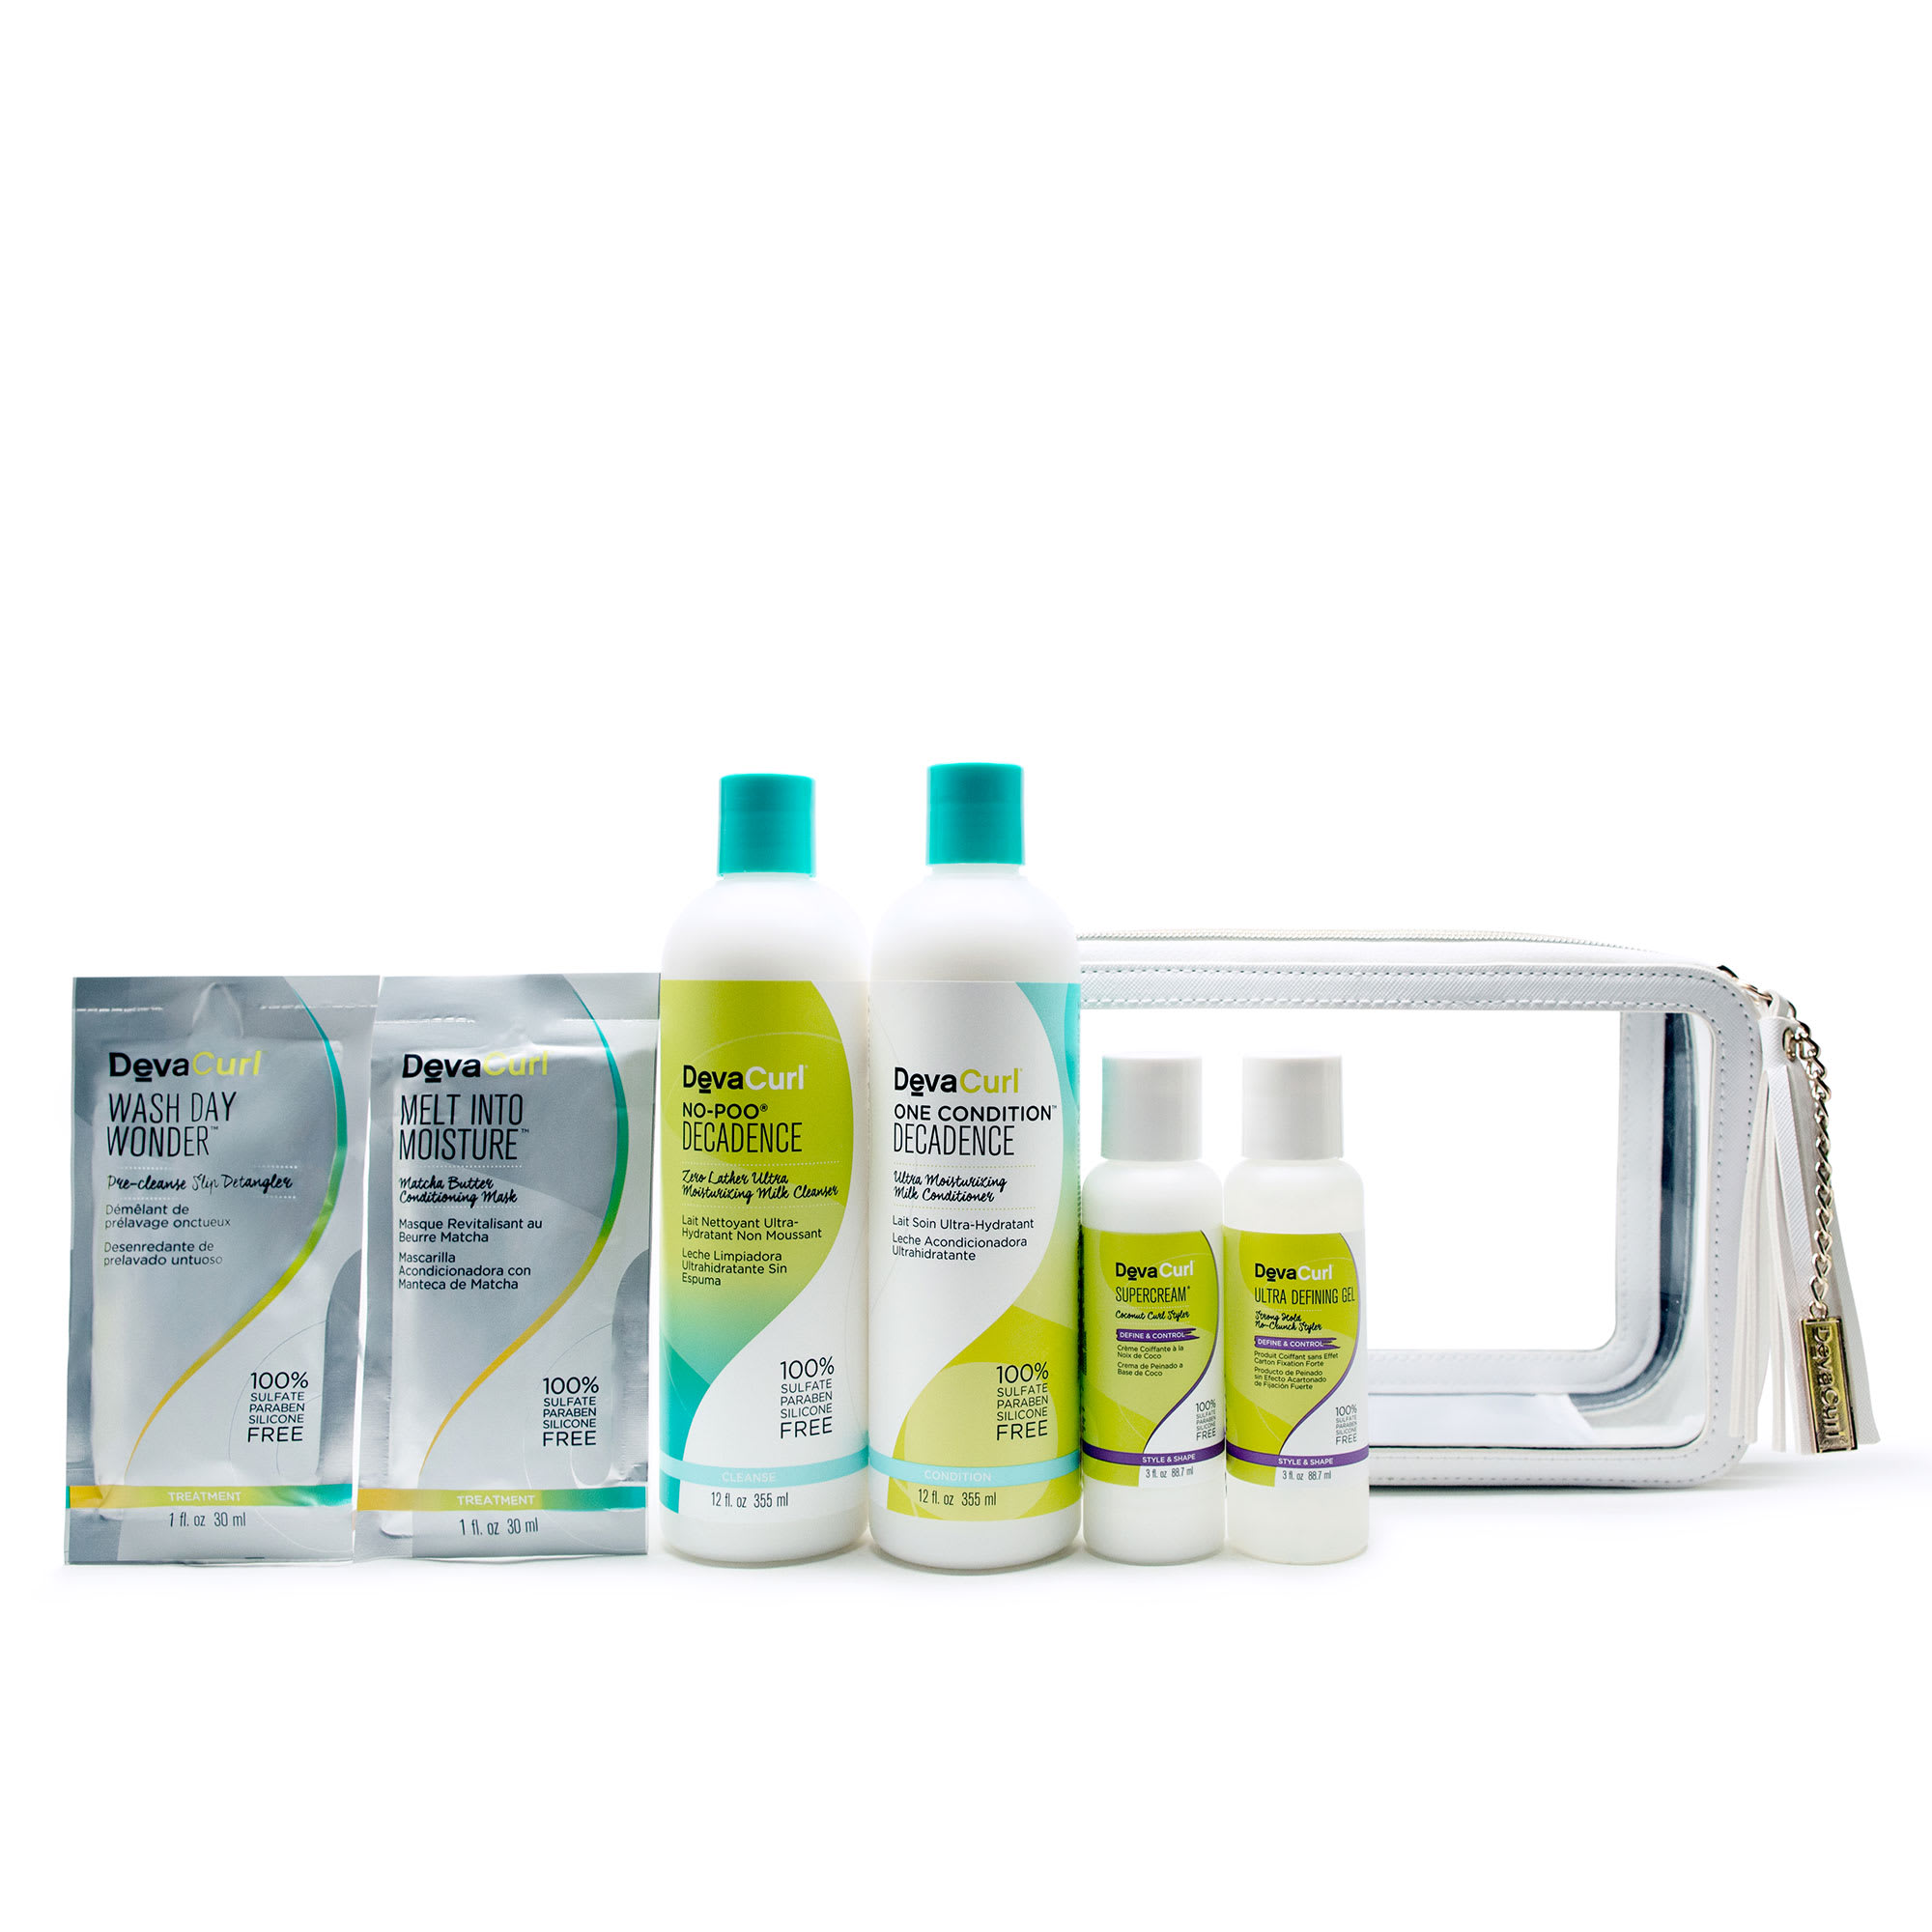 super curly routine kit bottles and travel case